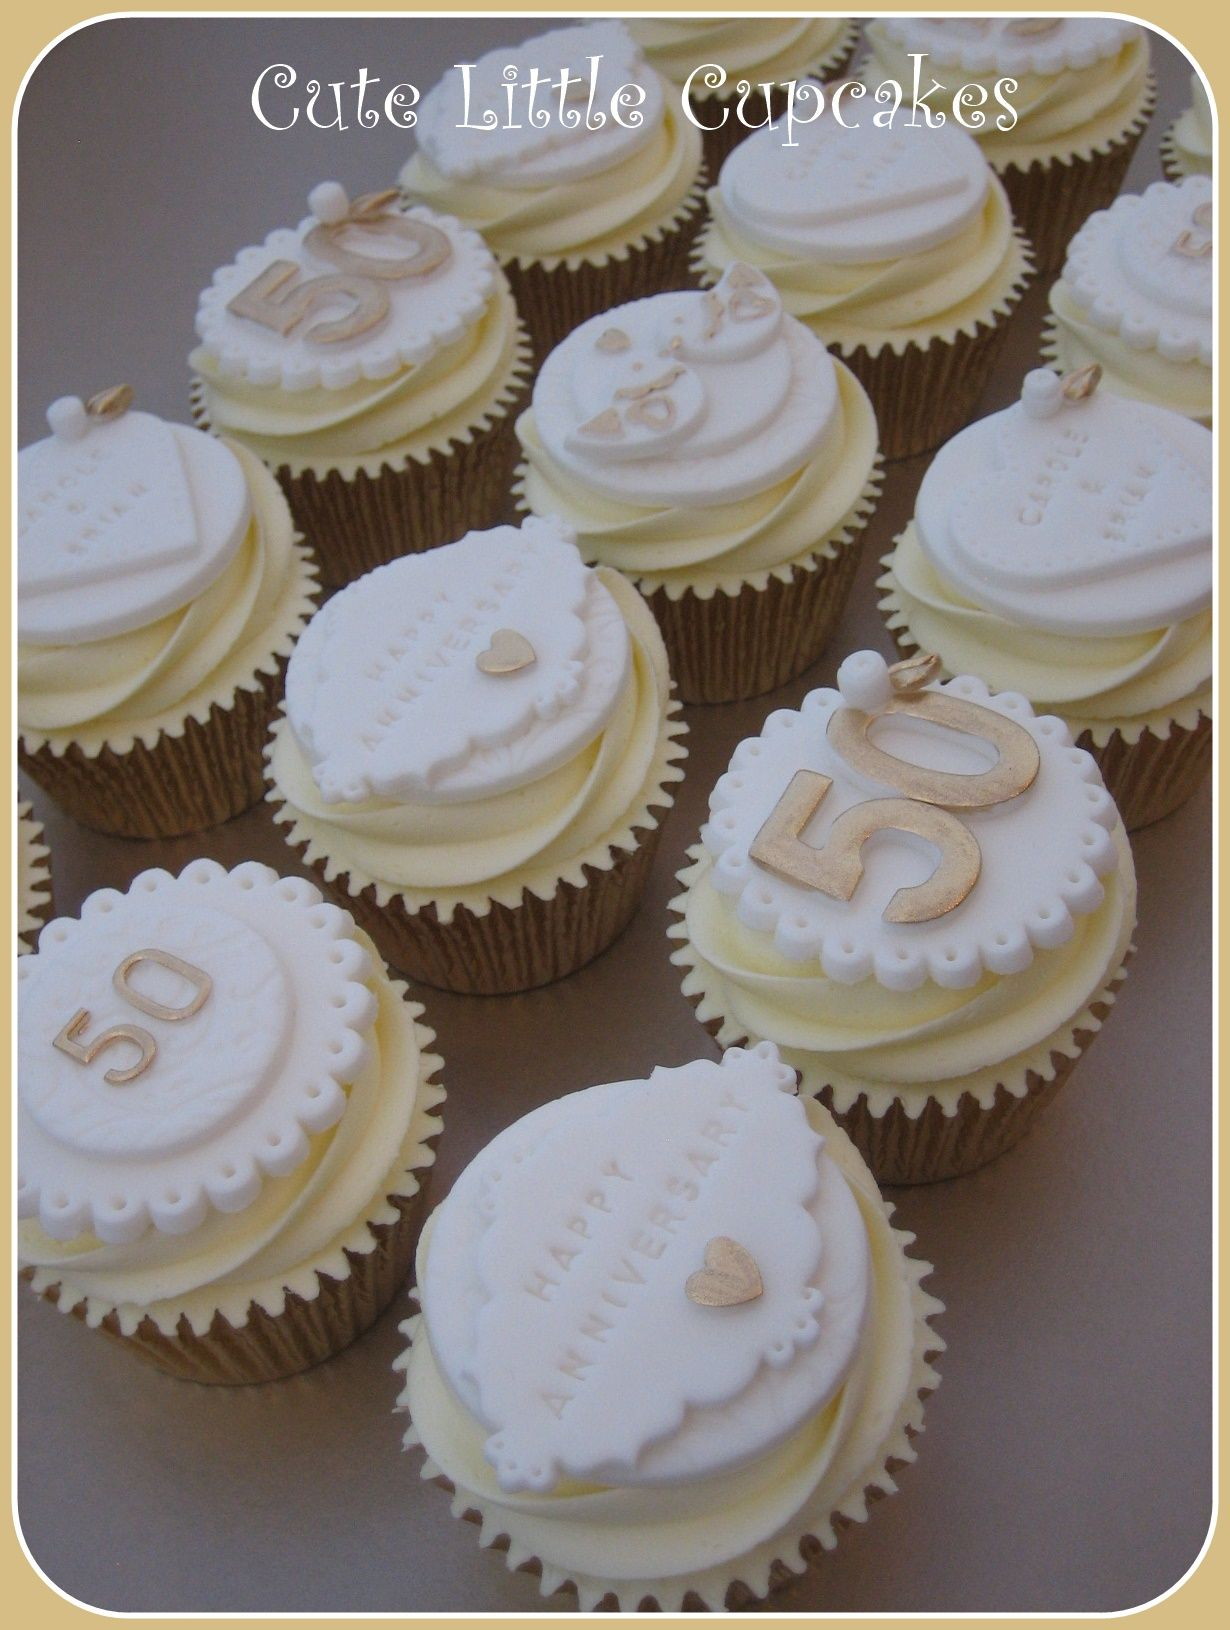 50th Wedding Anniversary Cupcakes Decorated With Fondant Toppers Highlighted Gold X